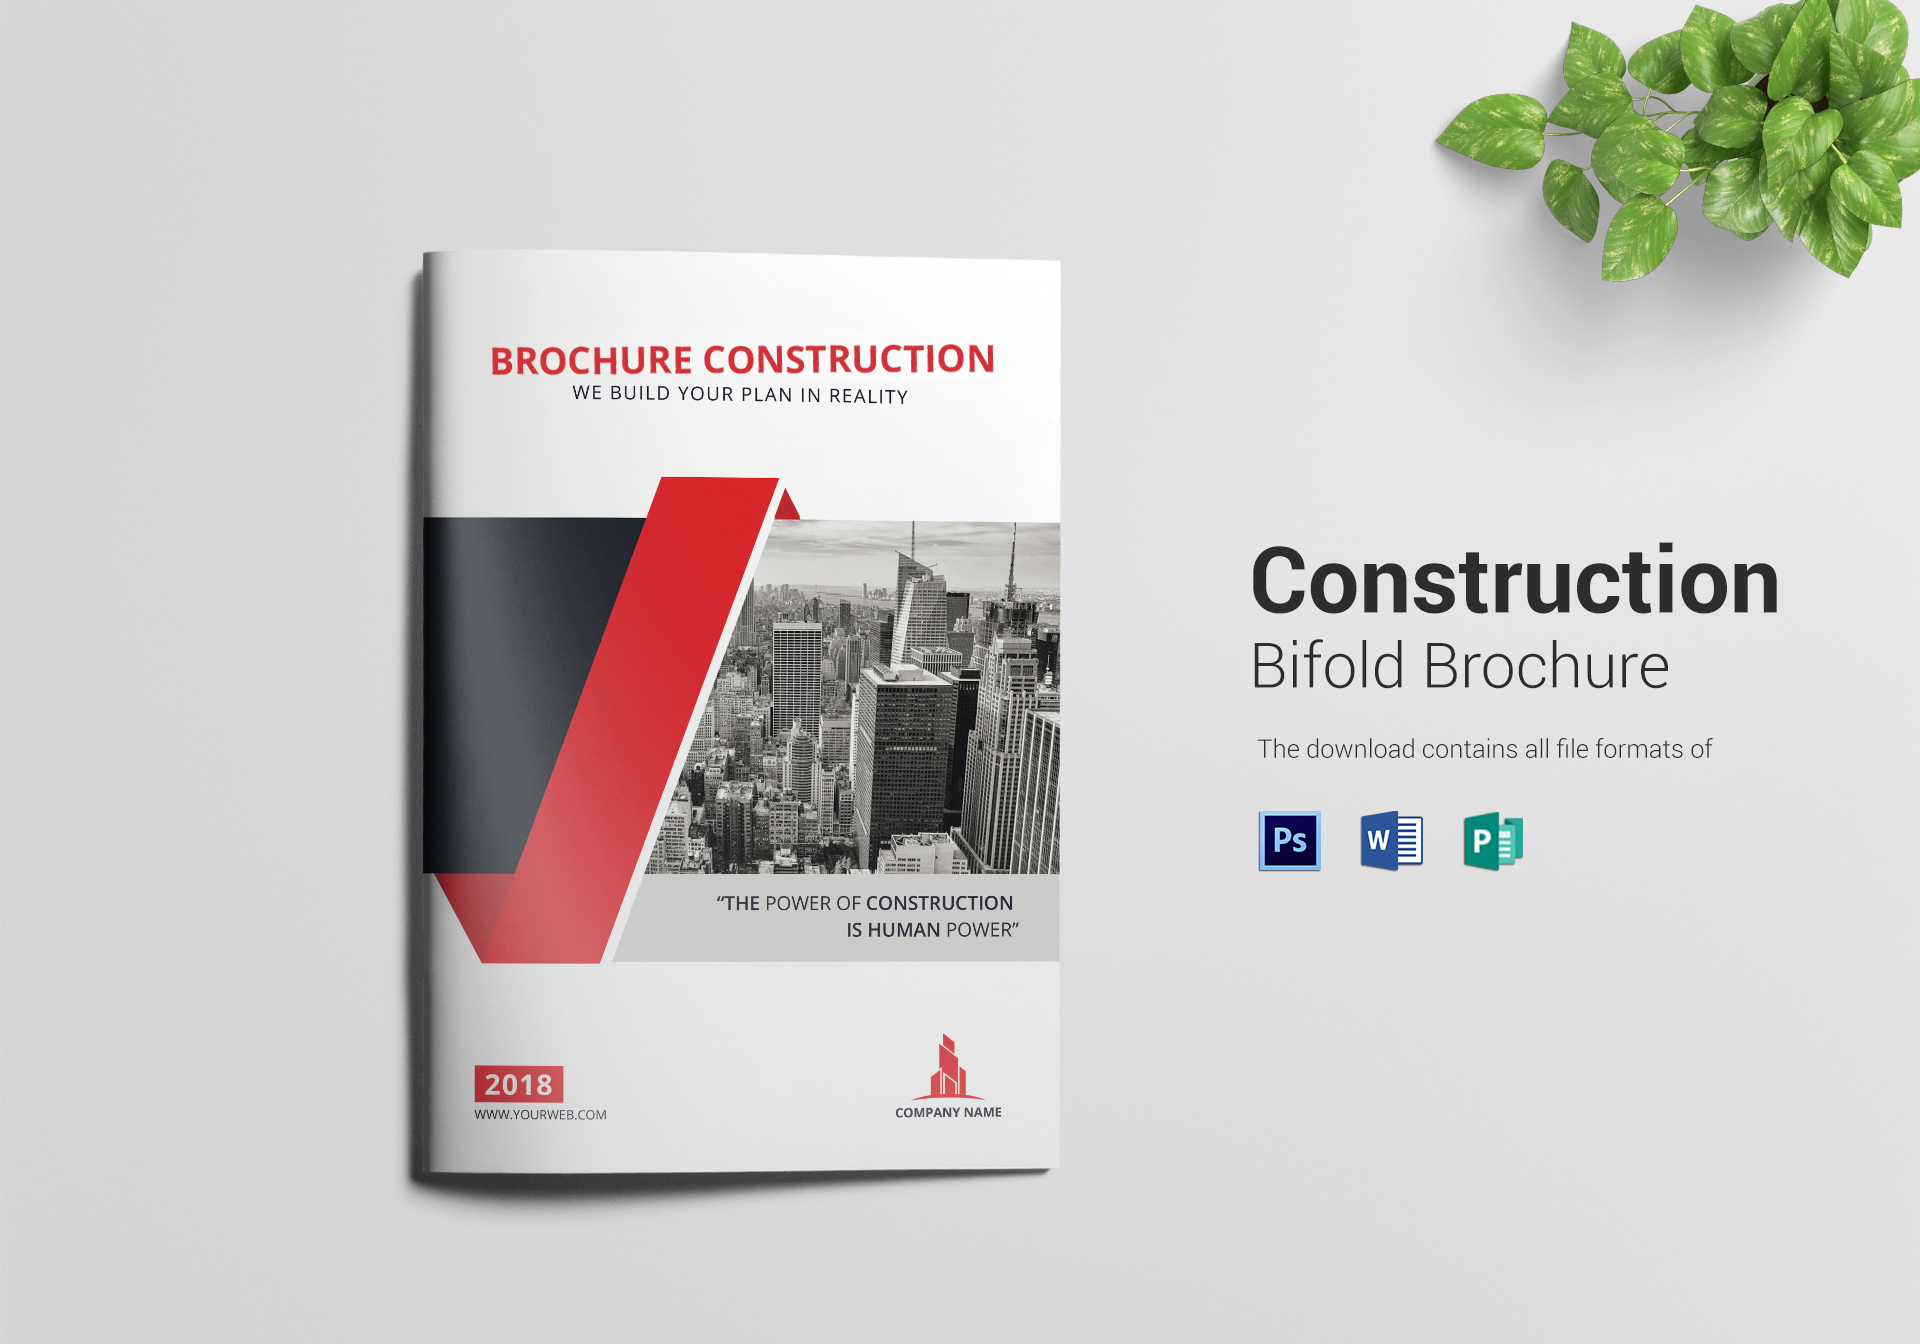 Construction Bi Fold Brochure Design Template In Word PSD Publisher - Bi fold brochure template publisher